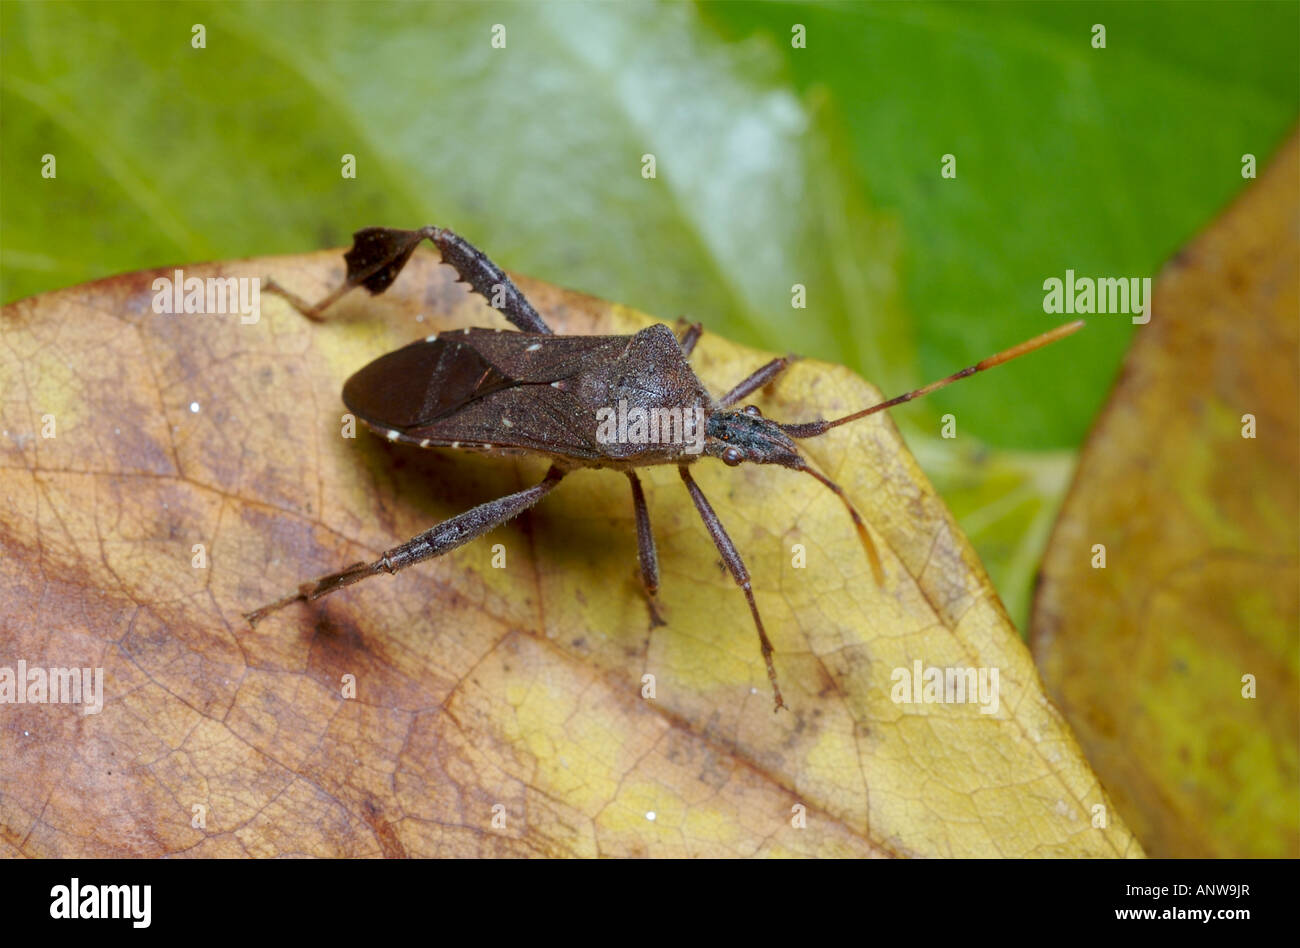 Leaf Footed Bug Stock Photos & Leaf Footed Bug Stock Images - Alamy